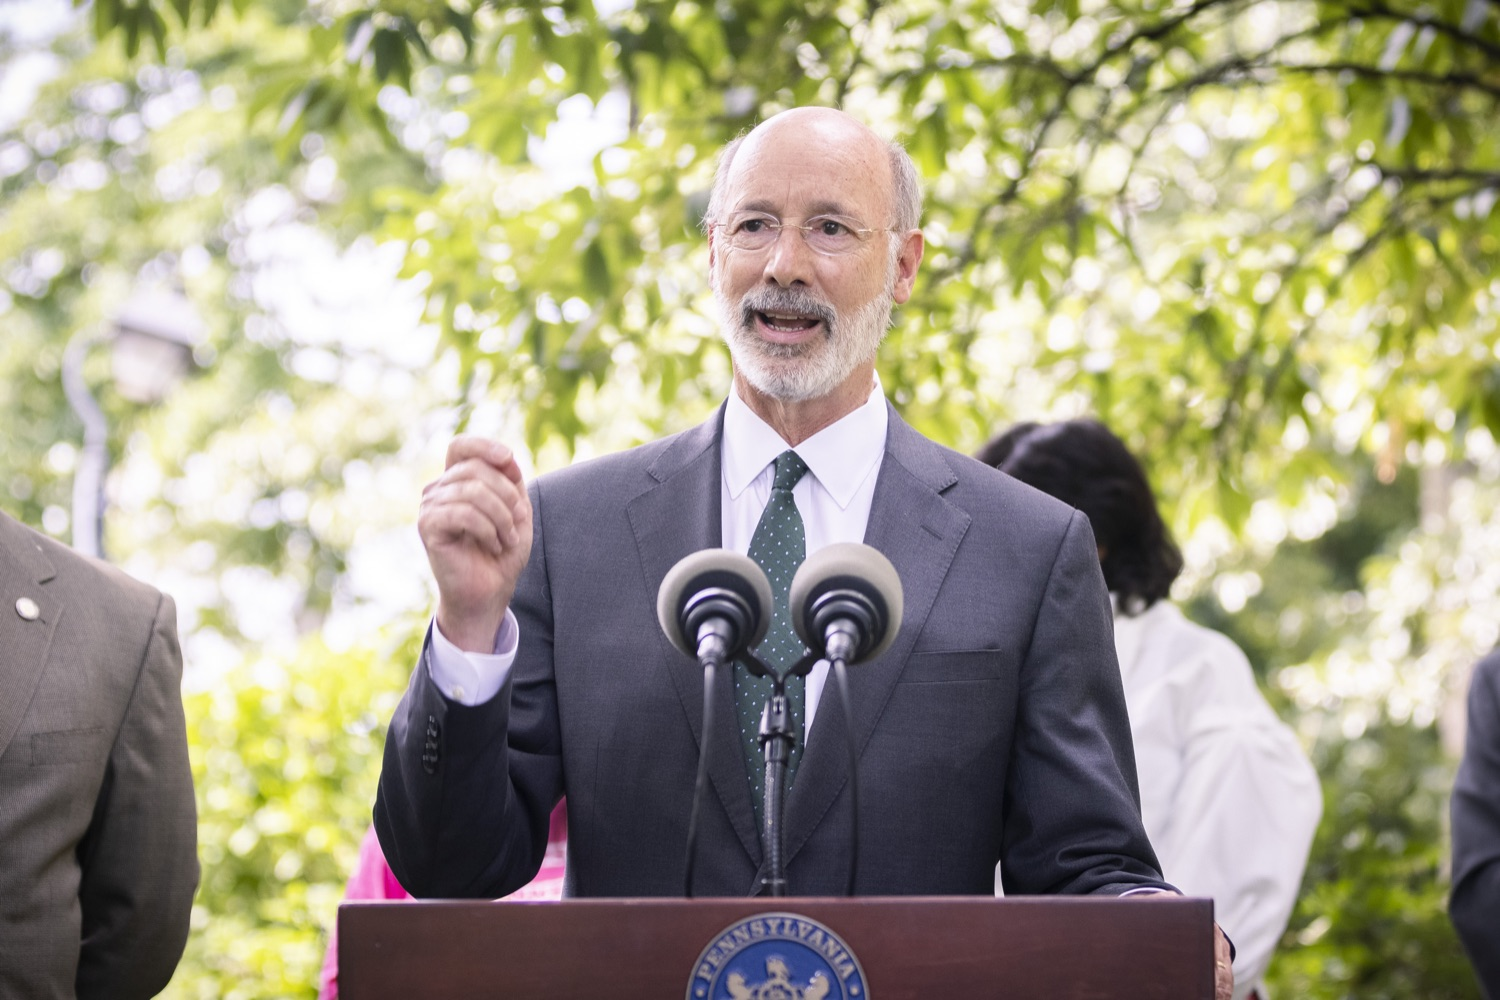 """<a href=""""https://filesource.wostreaming.net/commonwealthofpa/photo/18819_gov_reprodRights_dz_015.jpg"""" target=""""_blank"""">⇣Download Photo<br></a>Pennsylvania Governor Tom Wolf speaking with the press. Pennsylvania Governor Tom Wolf speaking with the press. Governor Wolf will discuss proposed anti-choice legislation that is moving through the House of Representatives and reaffirm that he will veto this damaging legislation.  JUNE 10, 2021 - PHILADELPHIA, PA"""